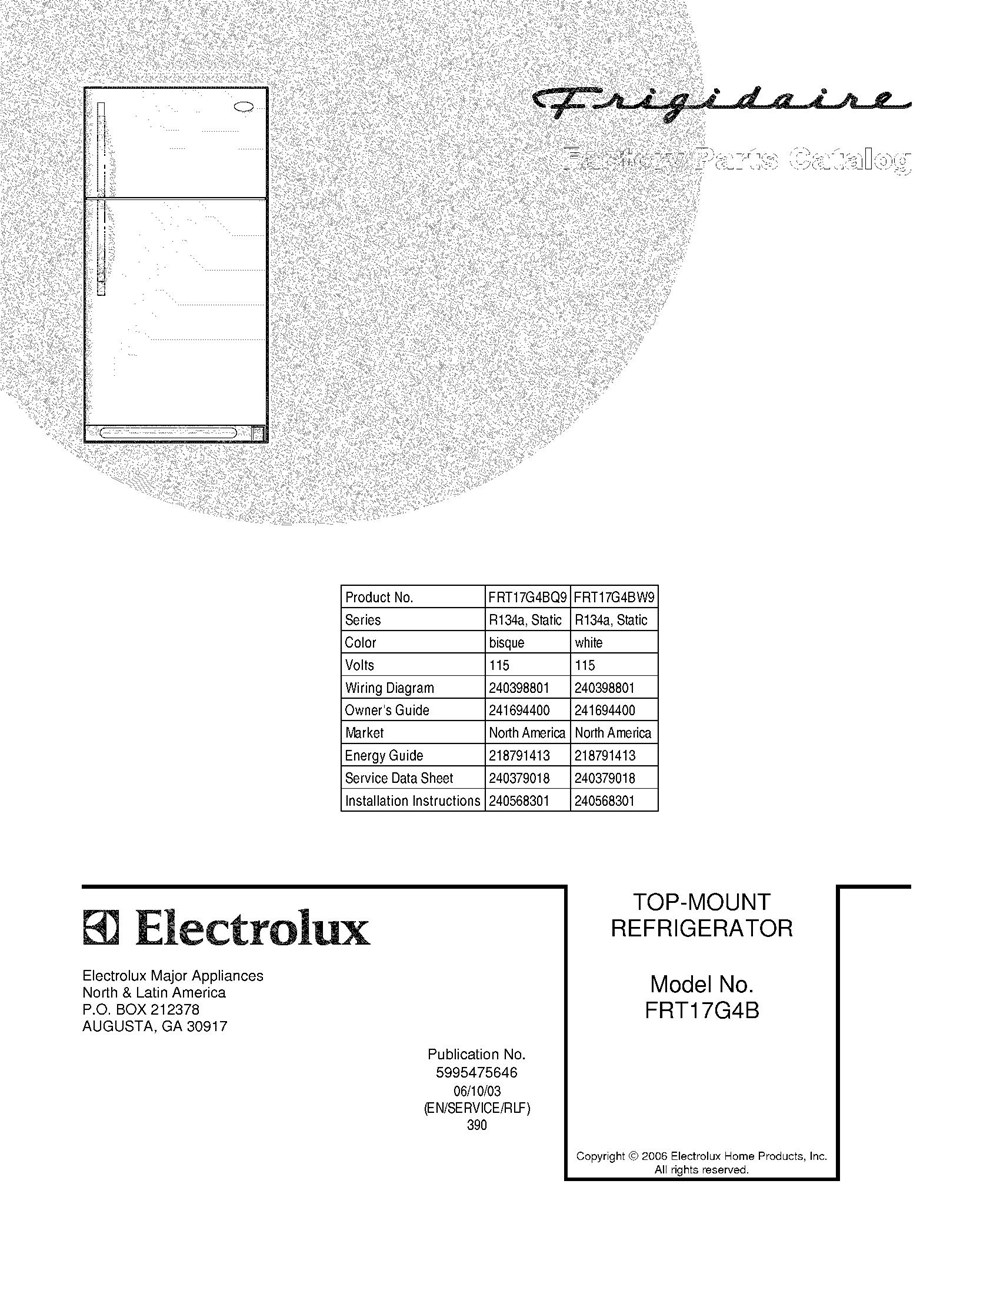 Wiring Diagram For Frigidaire Refrigerator Frt17g4bw9 Top Freezer 165 Cubic Feet Company